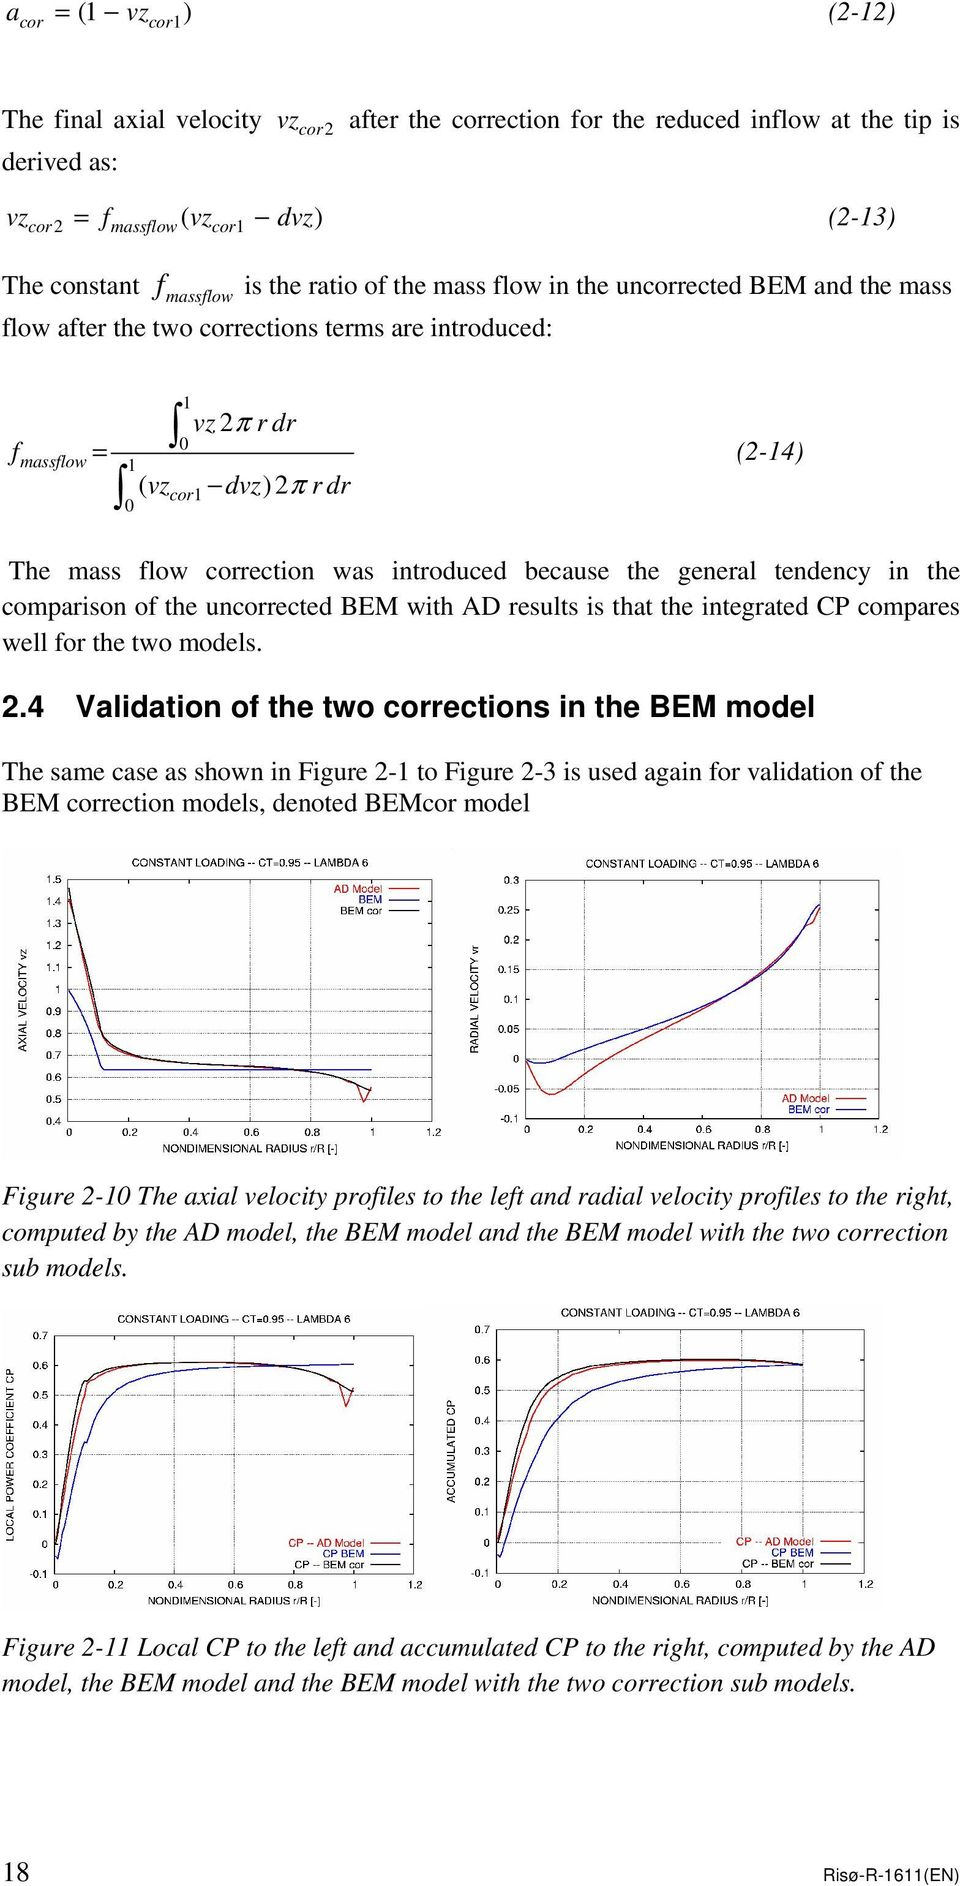 Two Modifications Of The Bem Method Based On Validation With Results Circuit Description Schematic Page 3 Pitchreference Oscillator And Correction Was Introduced Because General Tendency In Comparison Uncorrected Ad